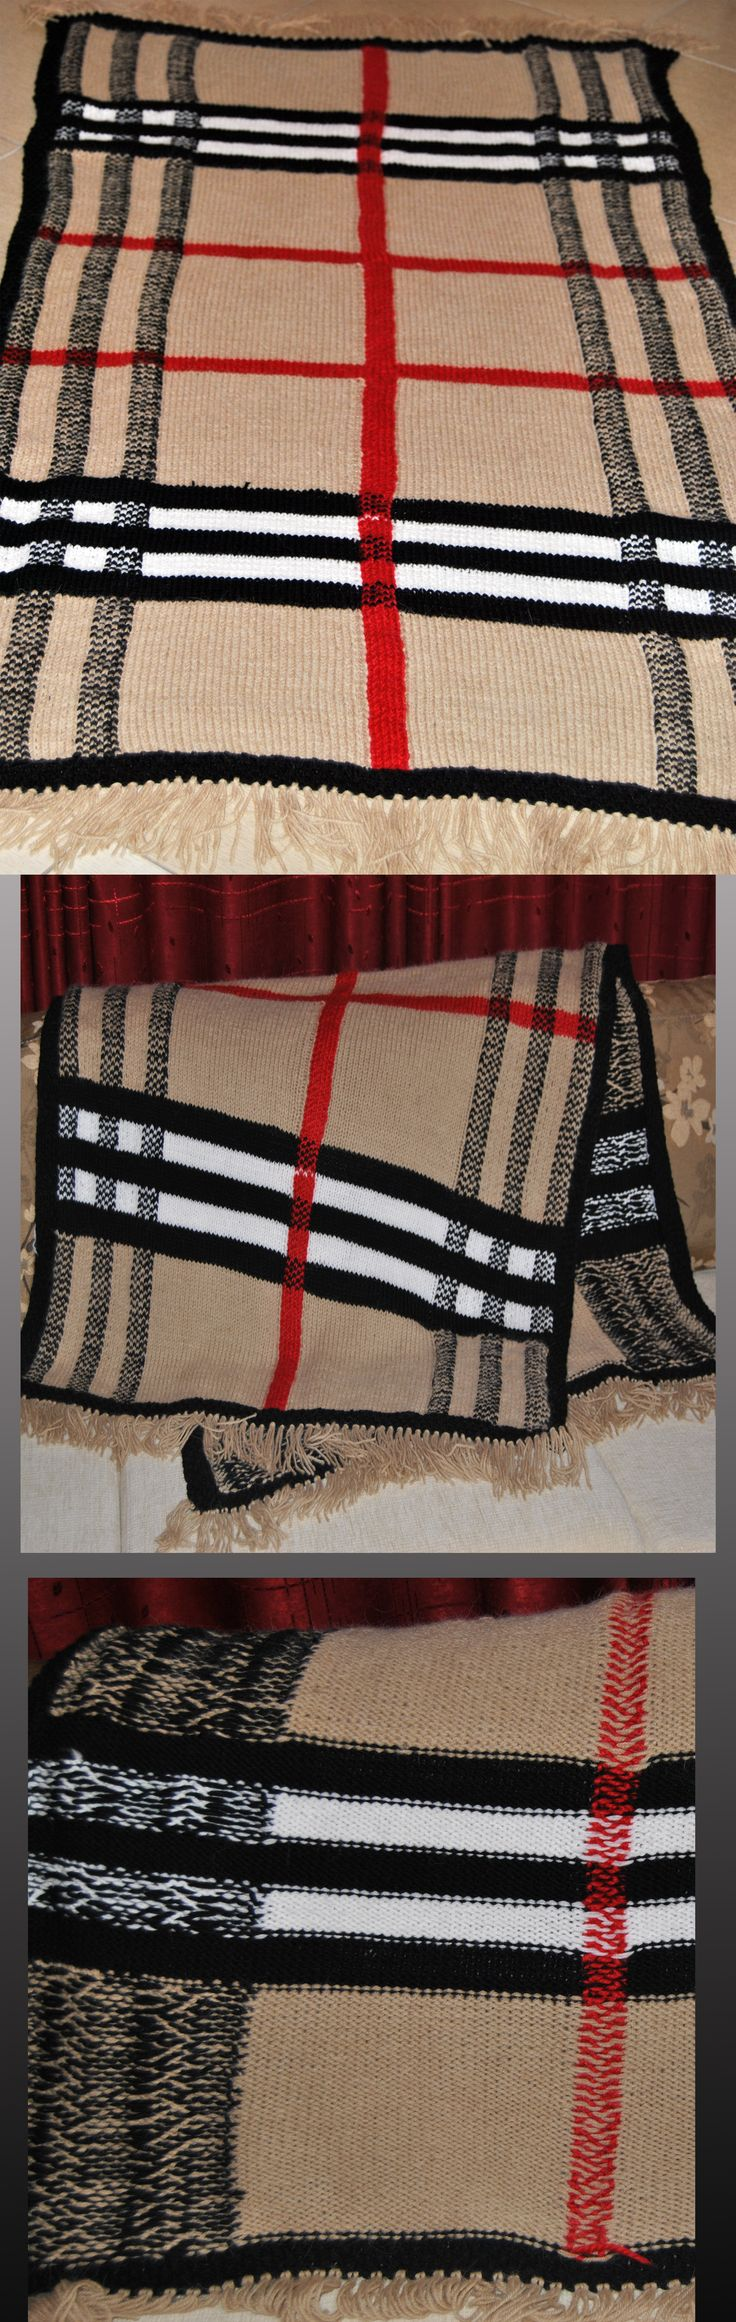 Blanket Burberry  OLGA   knitting for home - 1.2 kg, 1.00-160 cm/ Alize alpaca royal 262 color-0.6 kg, black- 100-150 gr, white and red. плед шерстяной спицами Барберри.